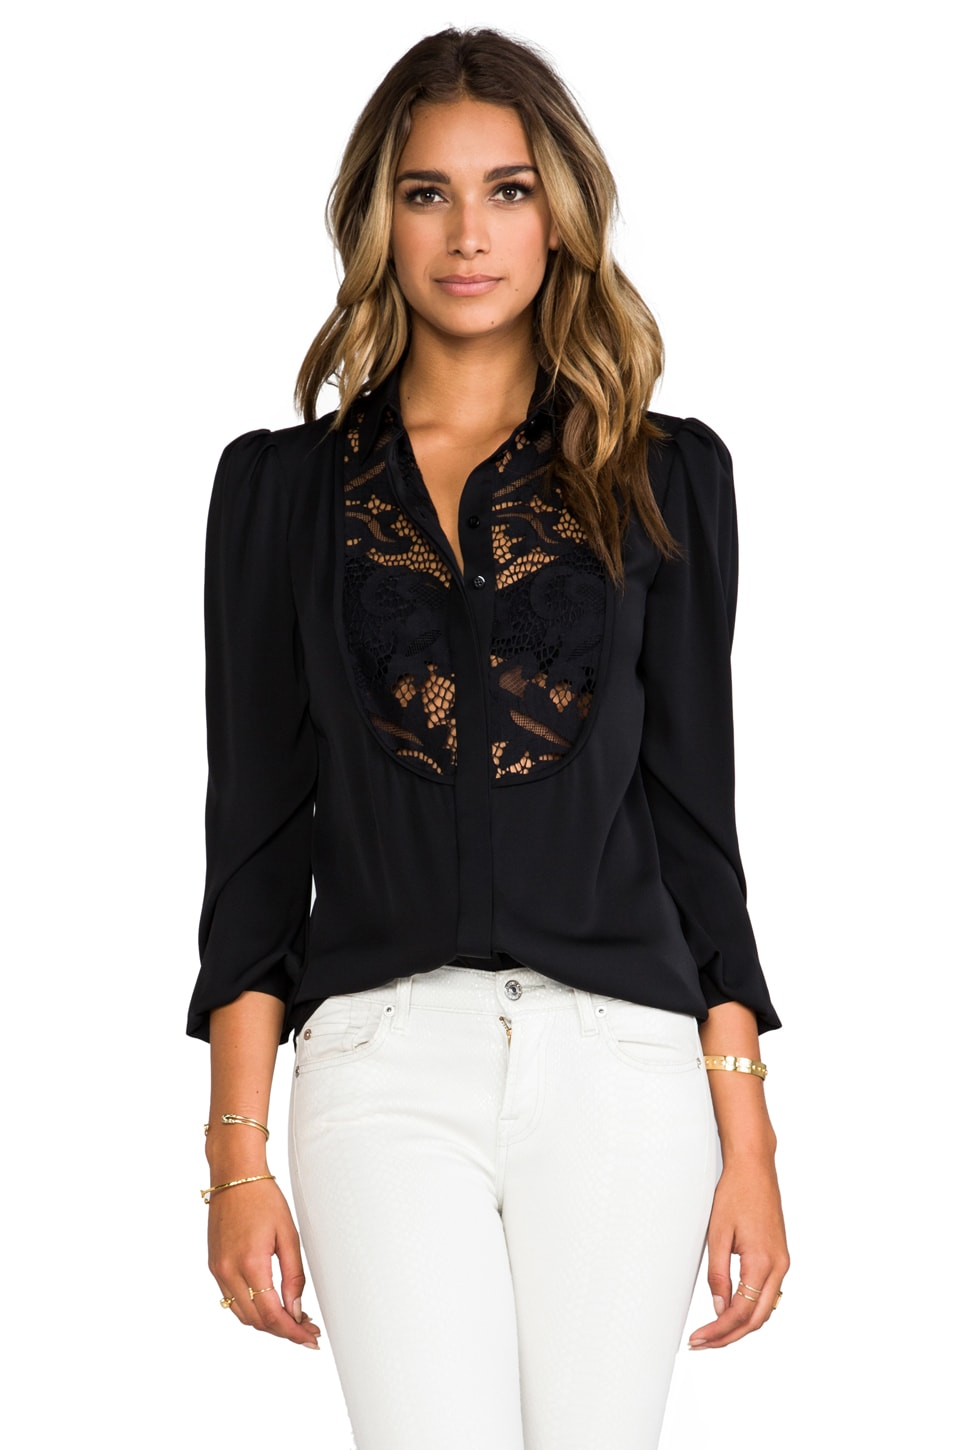 Diane von Furstenberg Lucia Top in Black